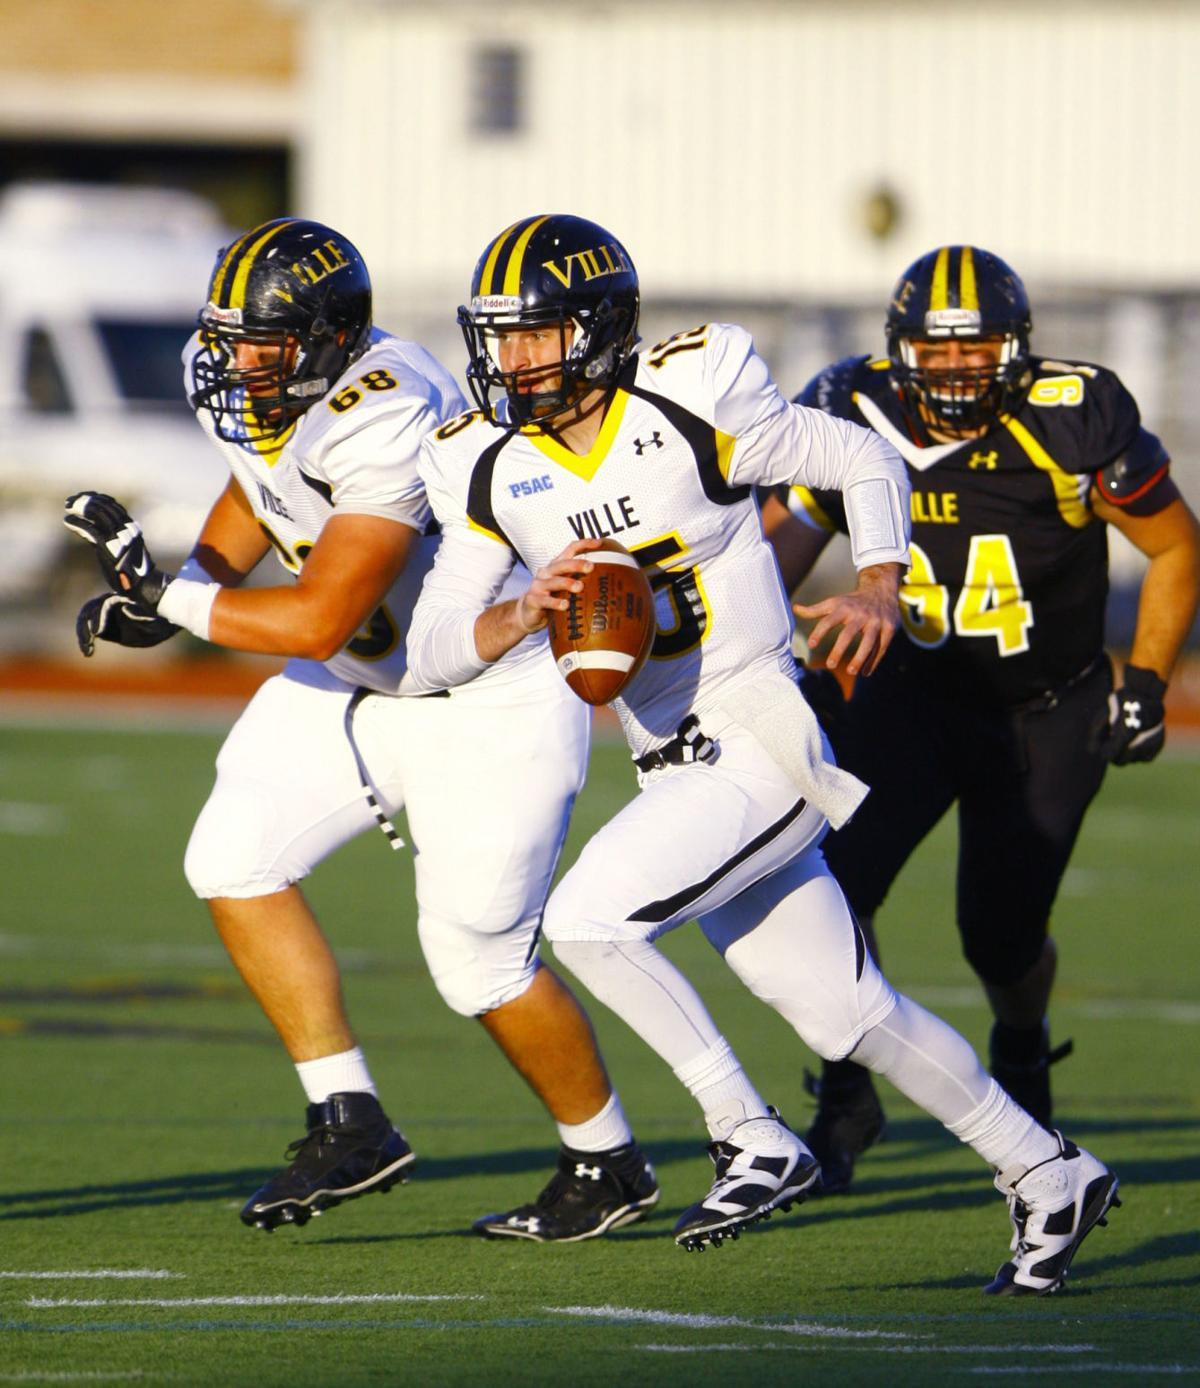 The Inside Track Lancaster Pa: Millersville University Football Continues Progress During